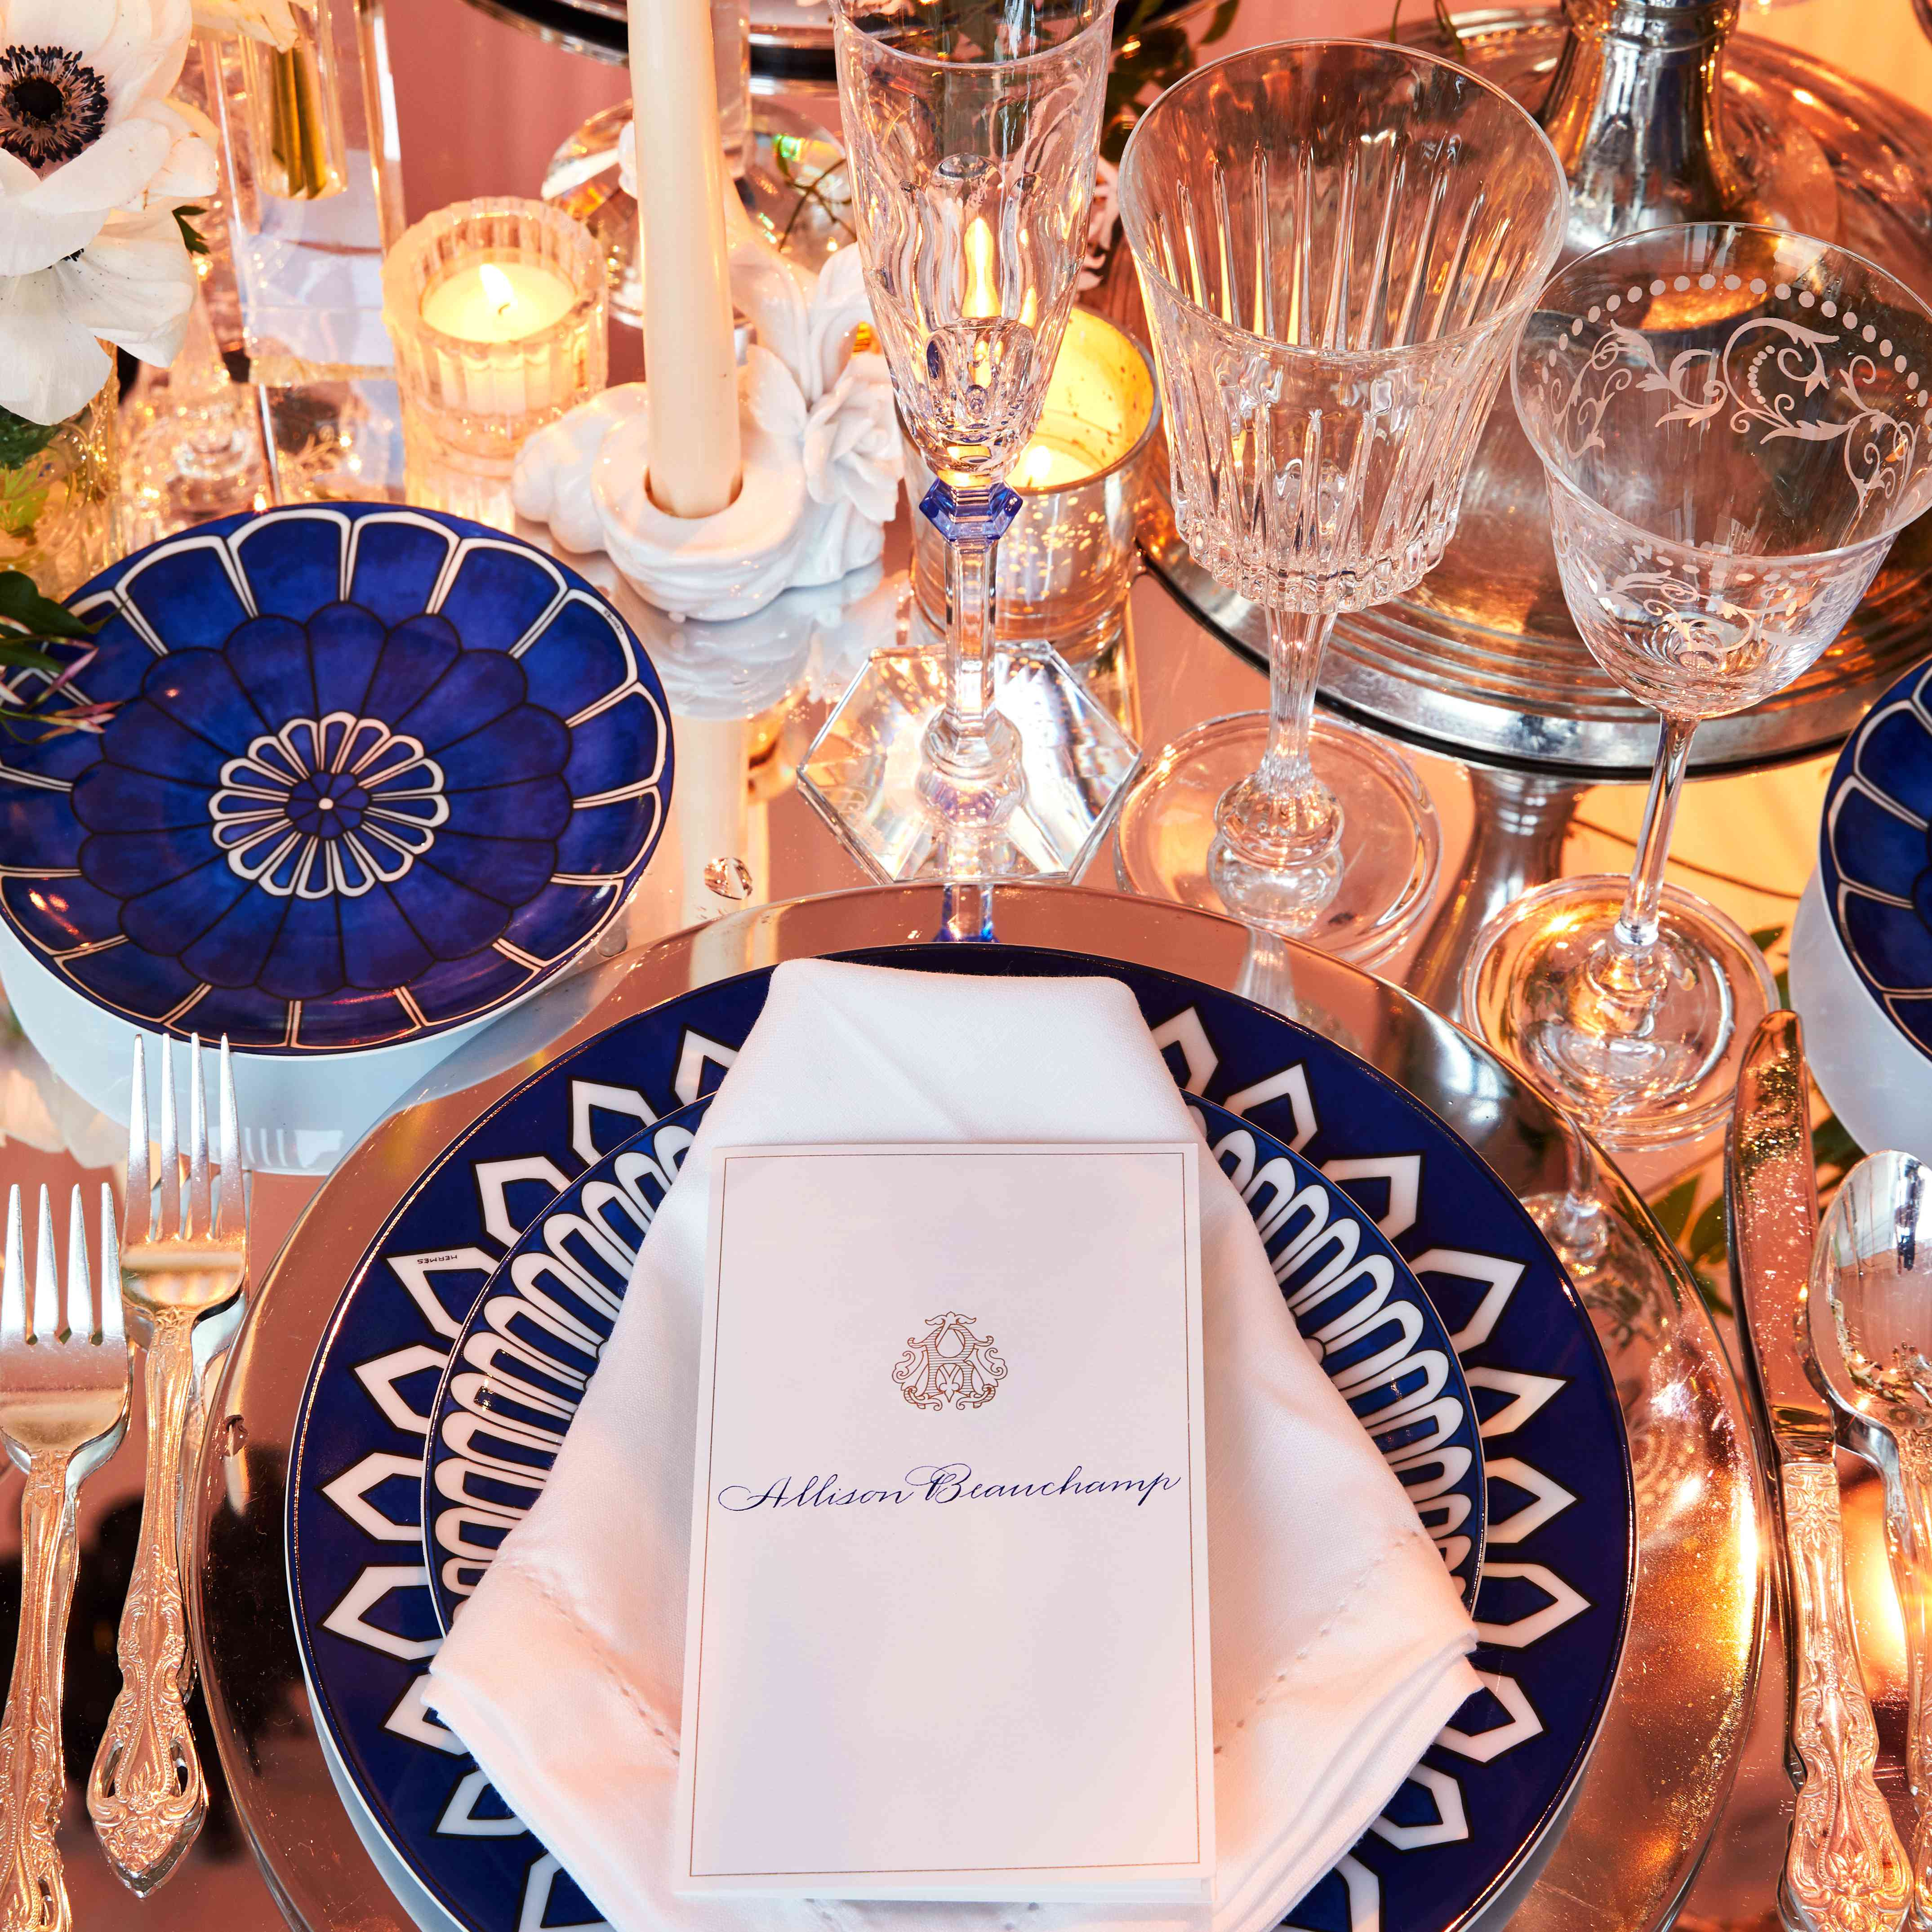 Hermes place setting